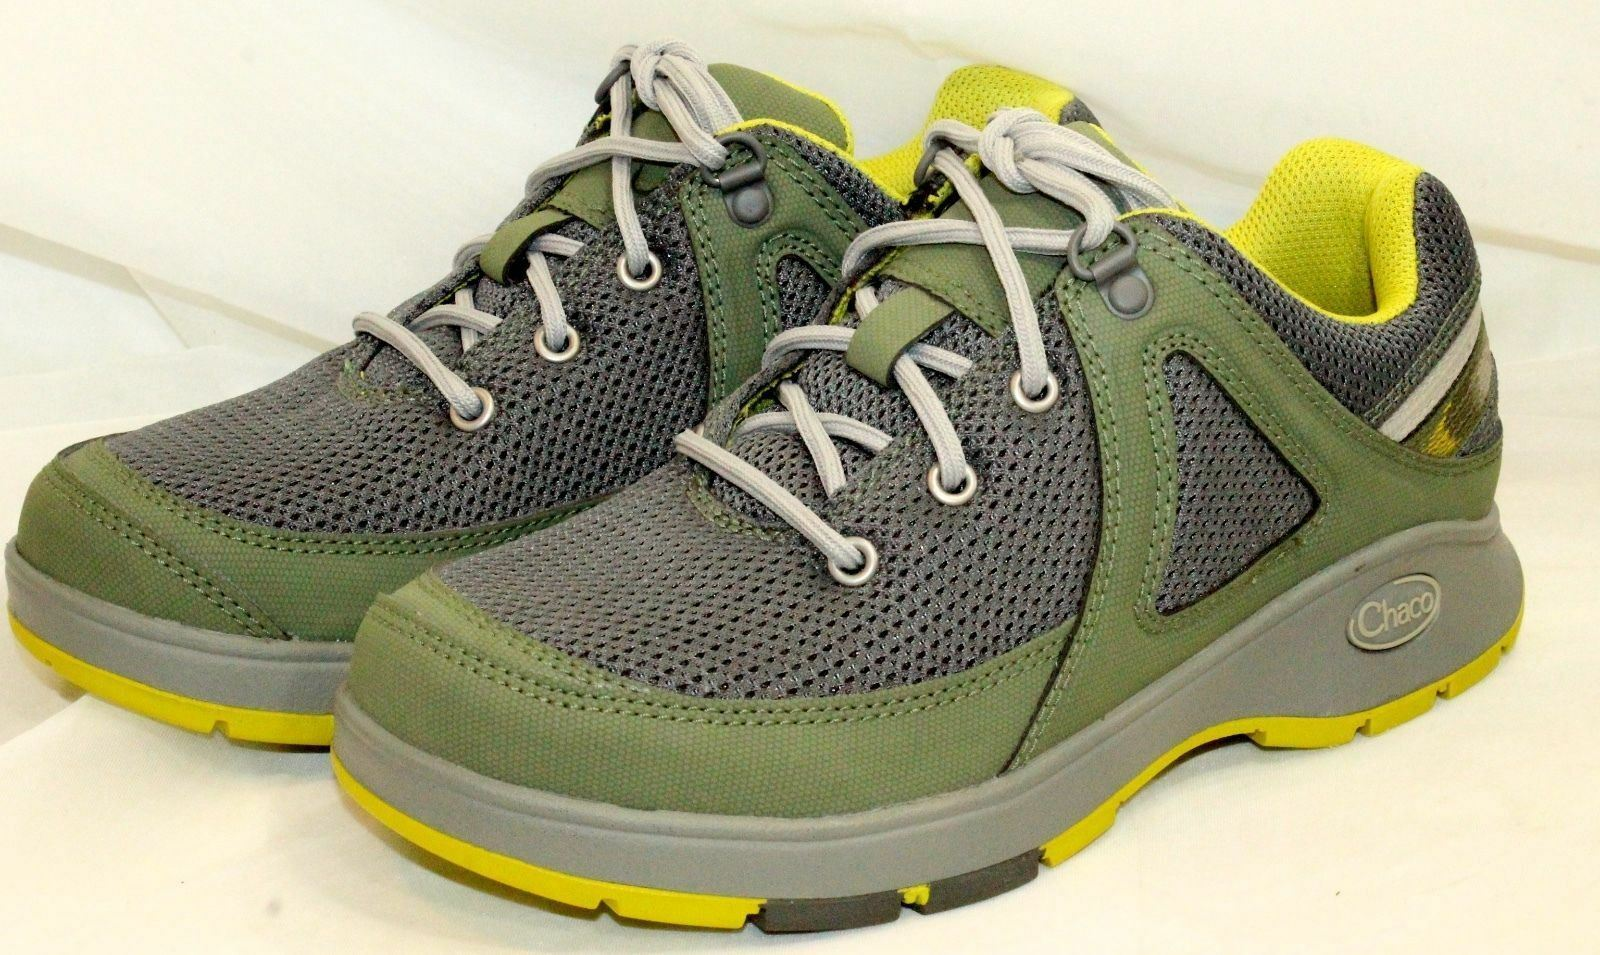 Chaco Vika Women's 5.5 Hiking Sneakers New in Box Oilive w/ Yellow accents AT